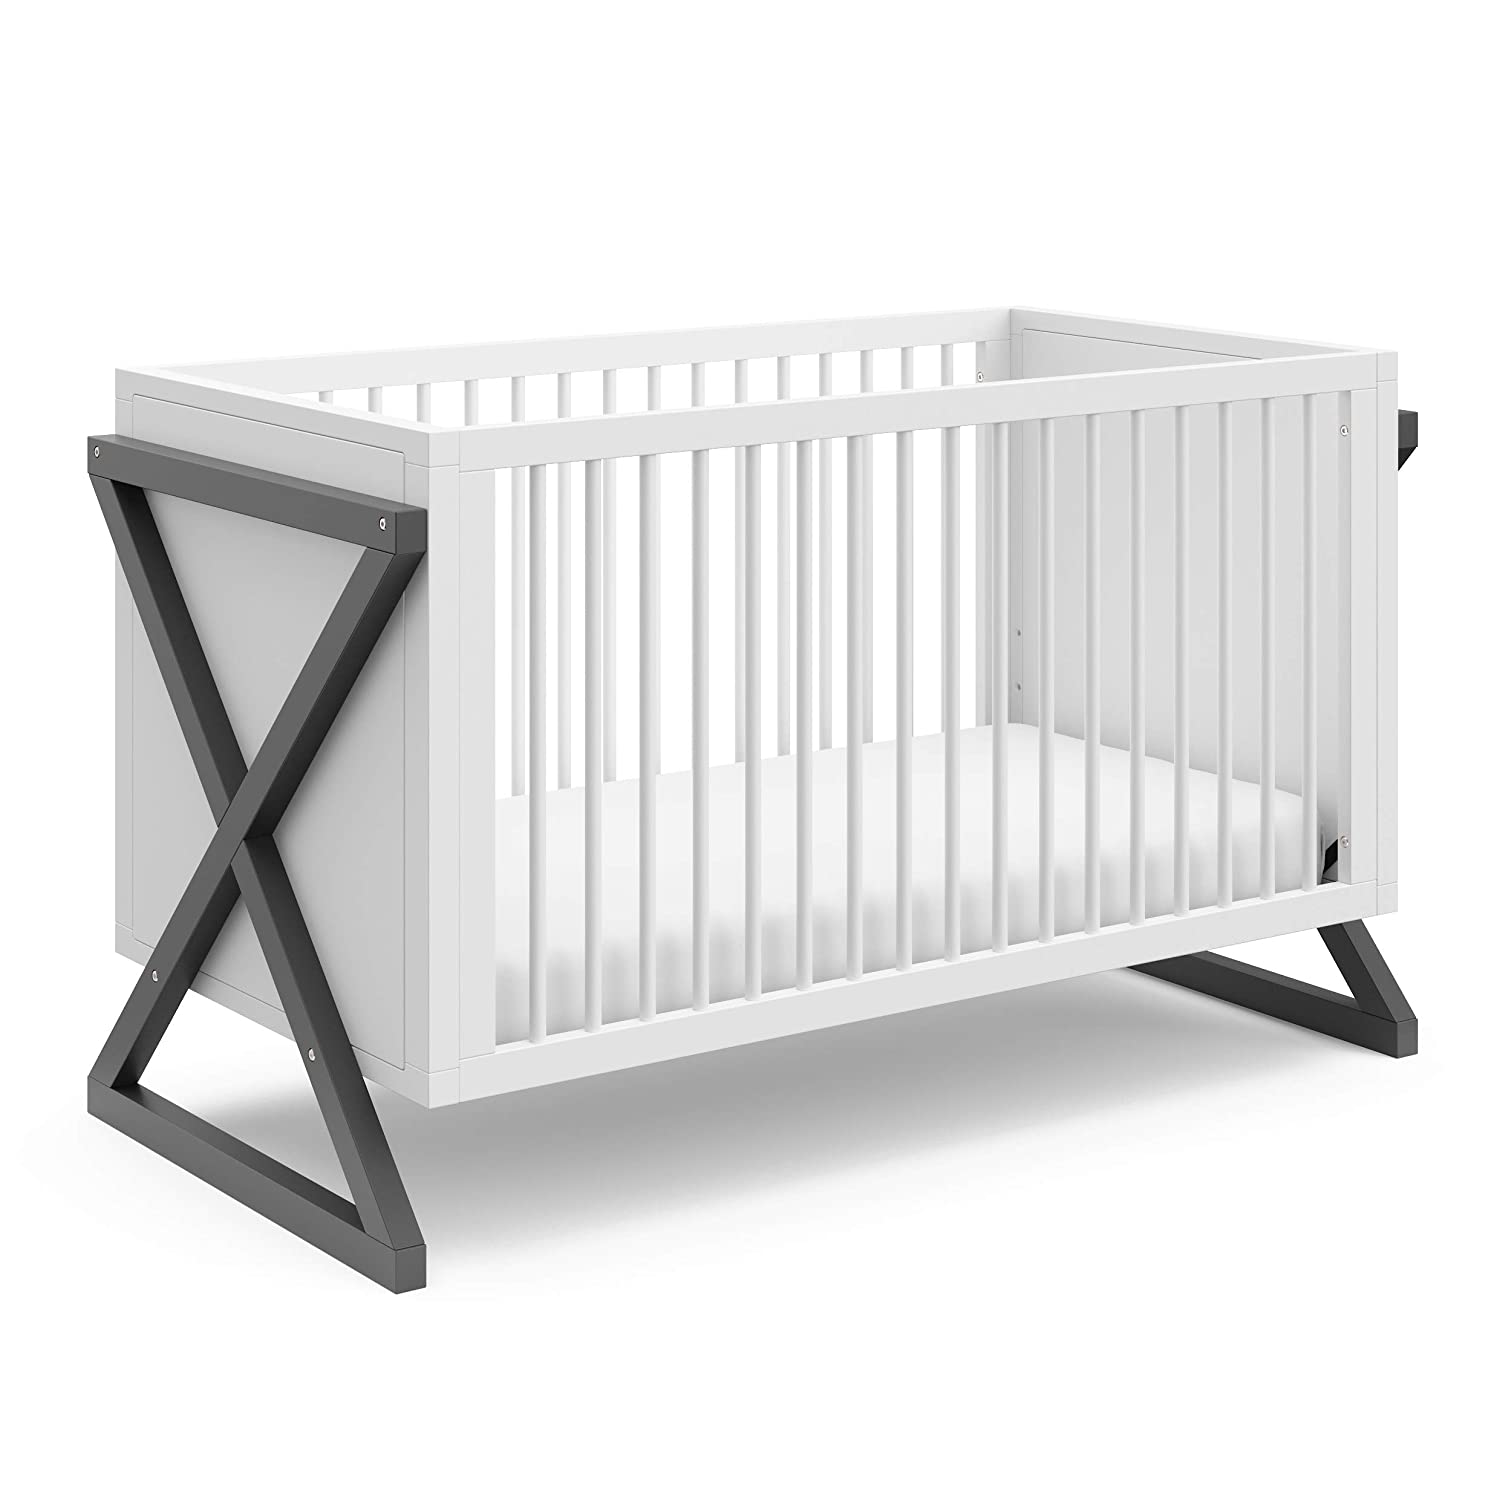 Storkcraft Equinox 3-in-1 Convertible Crib (Gray)